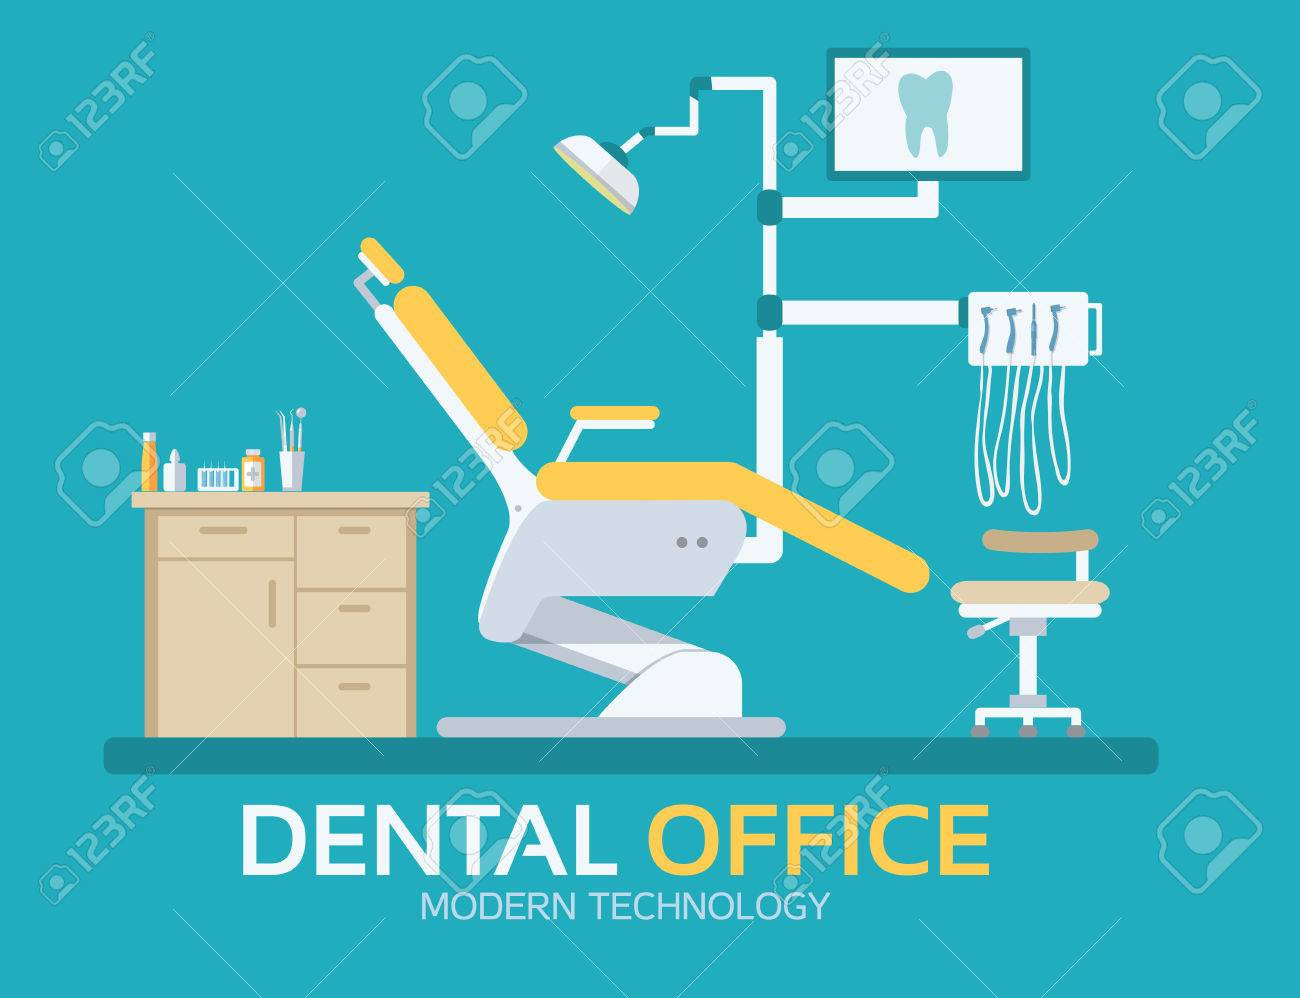 flat dentist office illustration design background. Vector illustration for colorful template for you design, web and mobile applications - 39172745